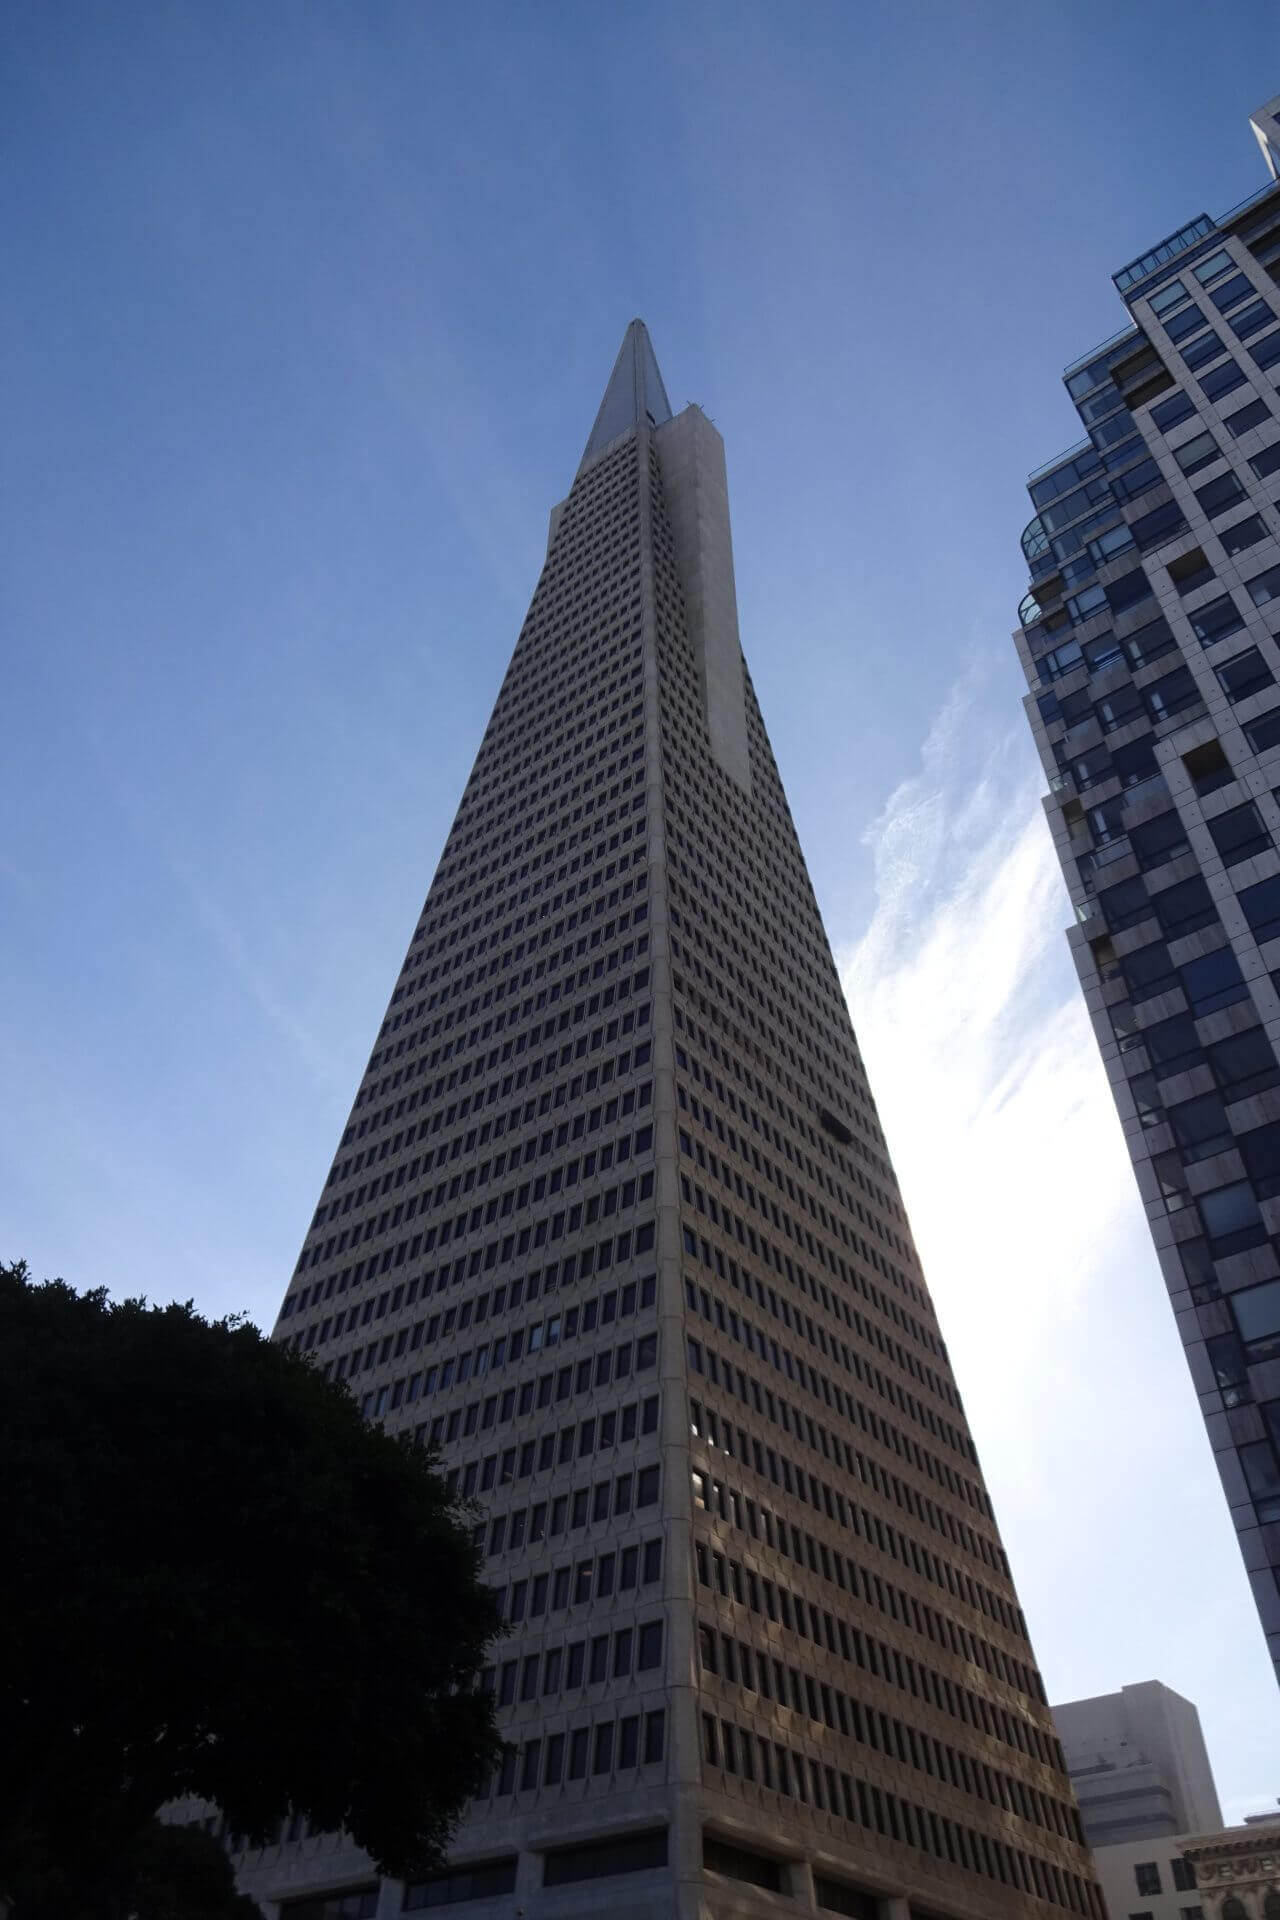 Downtown. The Pyramid. Bilder und Eindrücke aus San Francisco, California, United States.